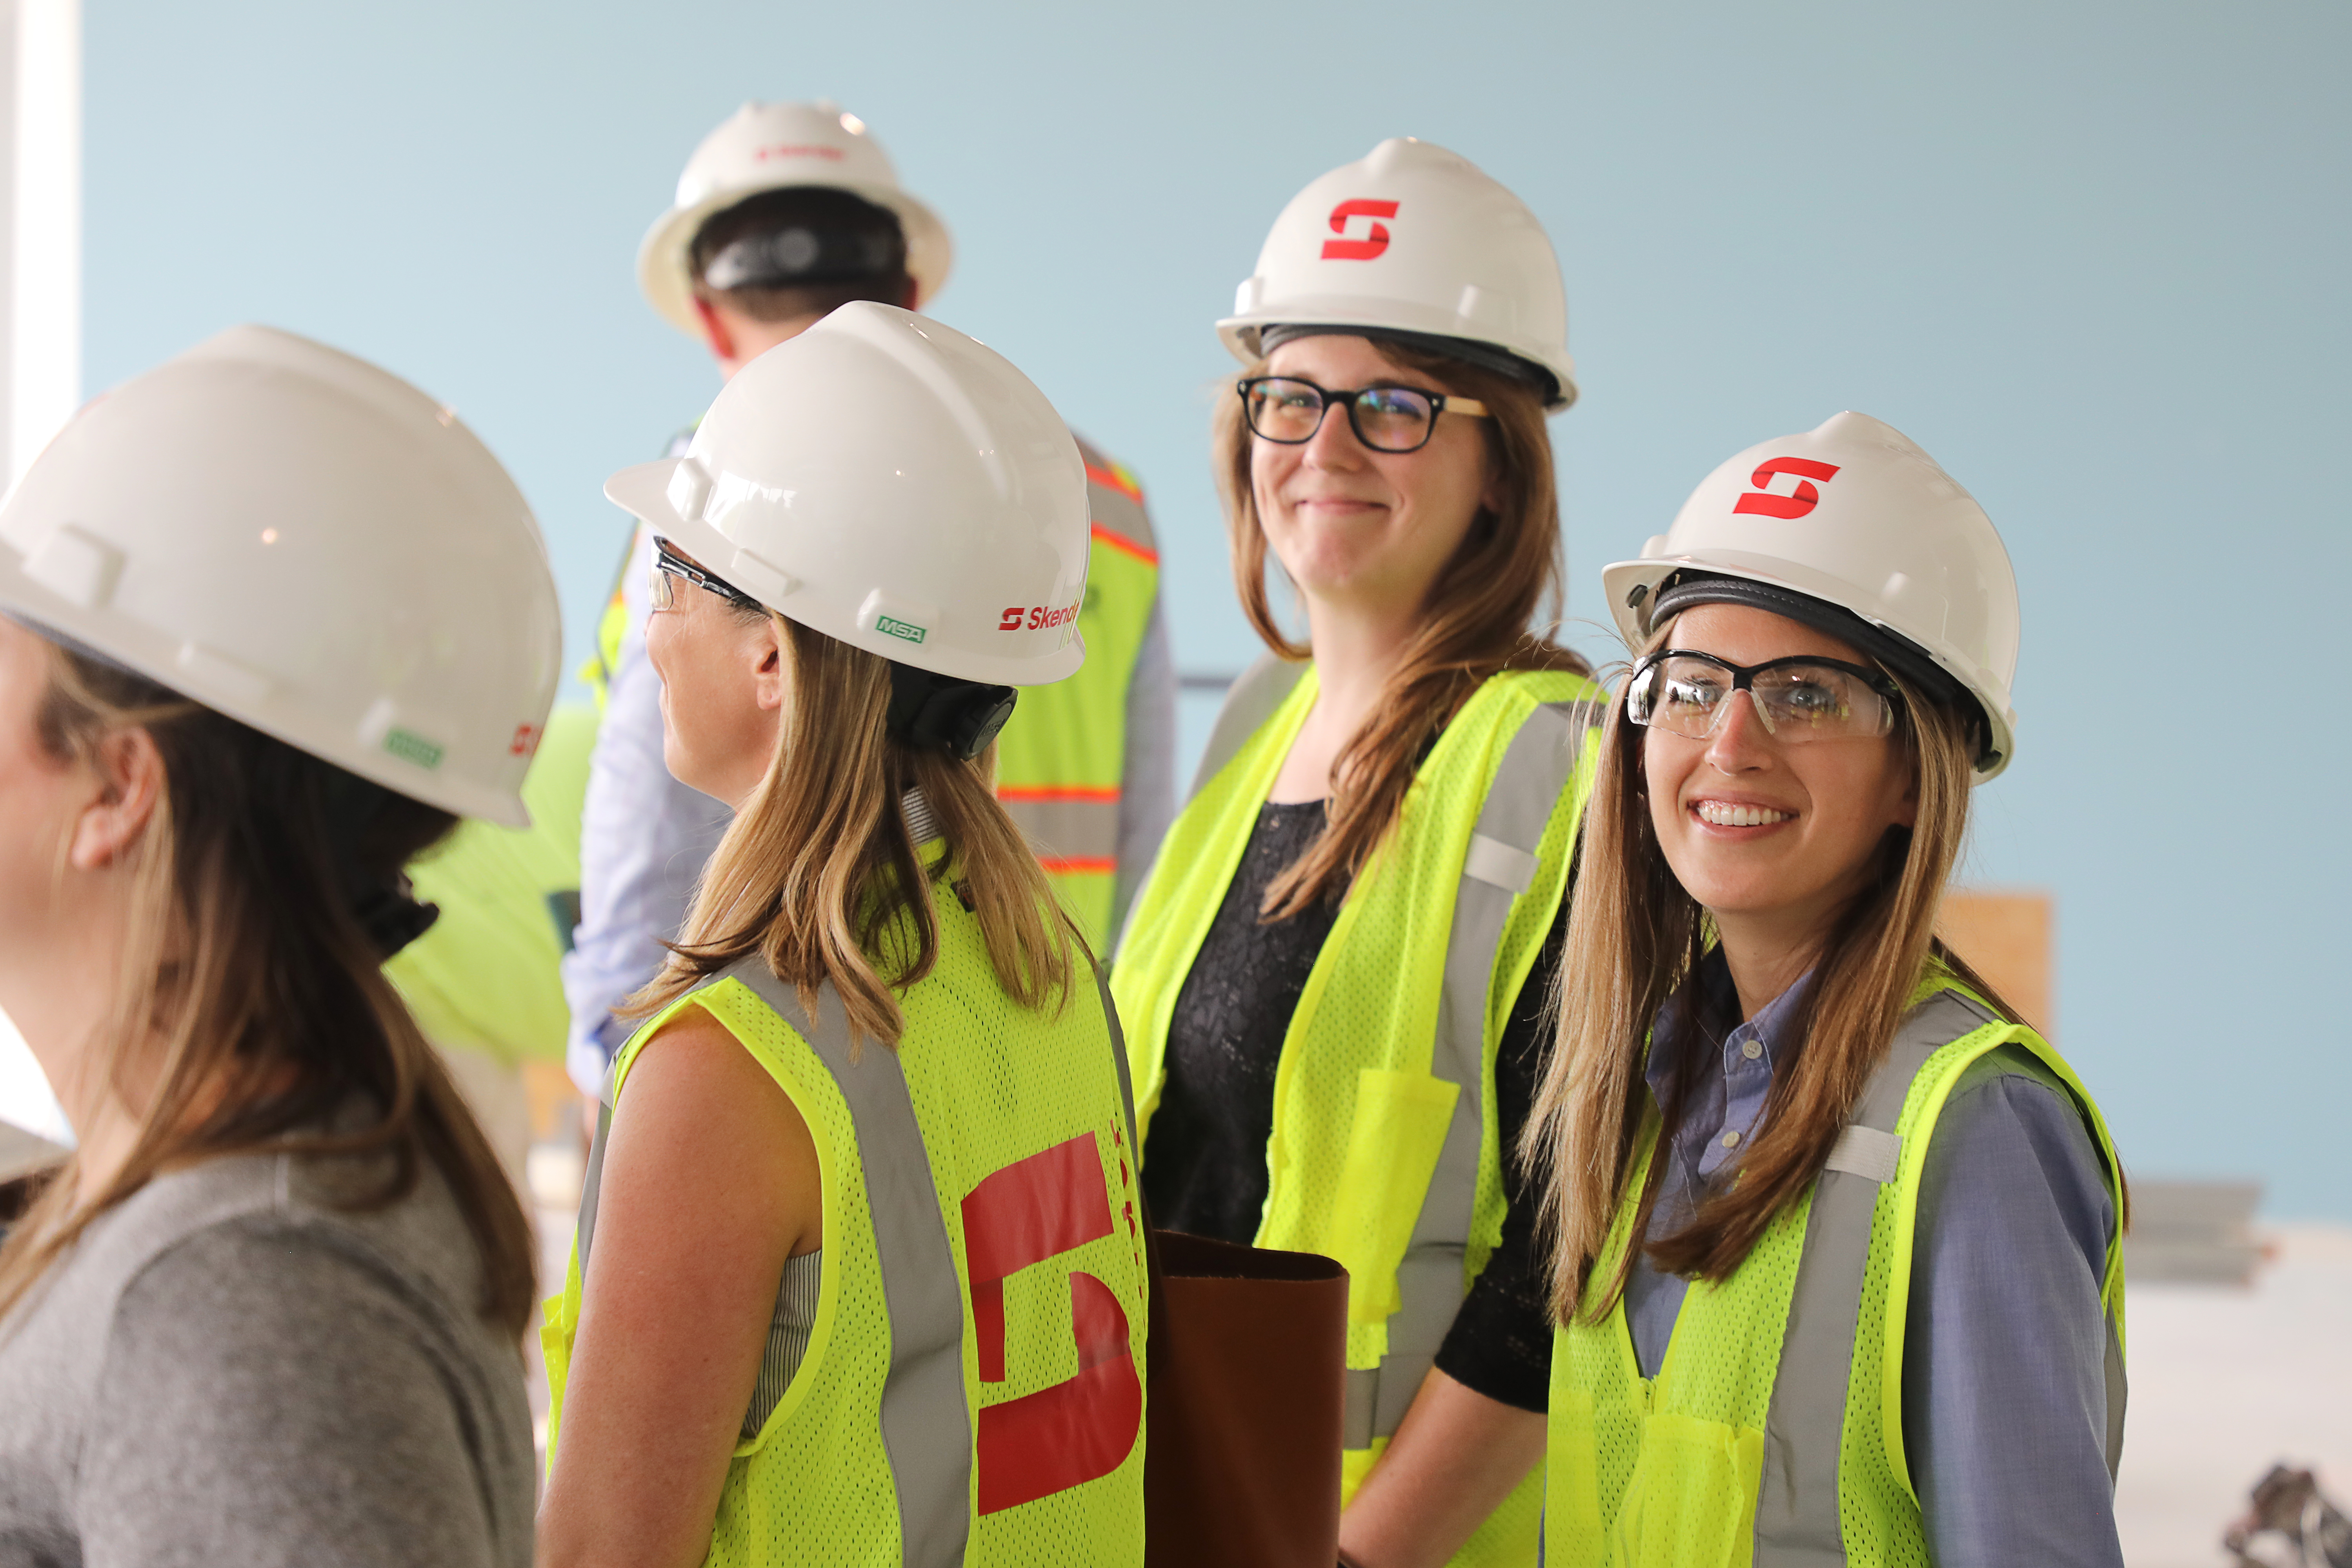 Women Have Created Paths For Upward Growth In Construction. Now They're Working On The Next Step